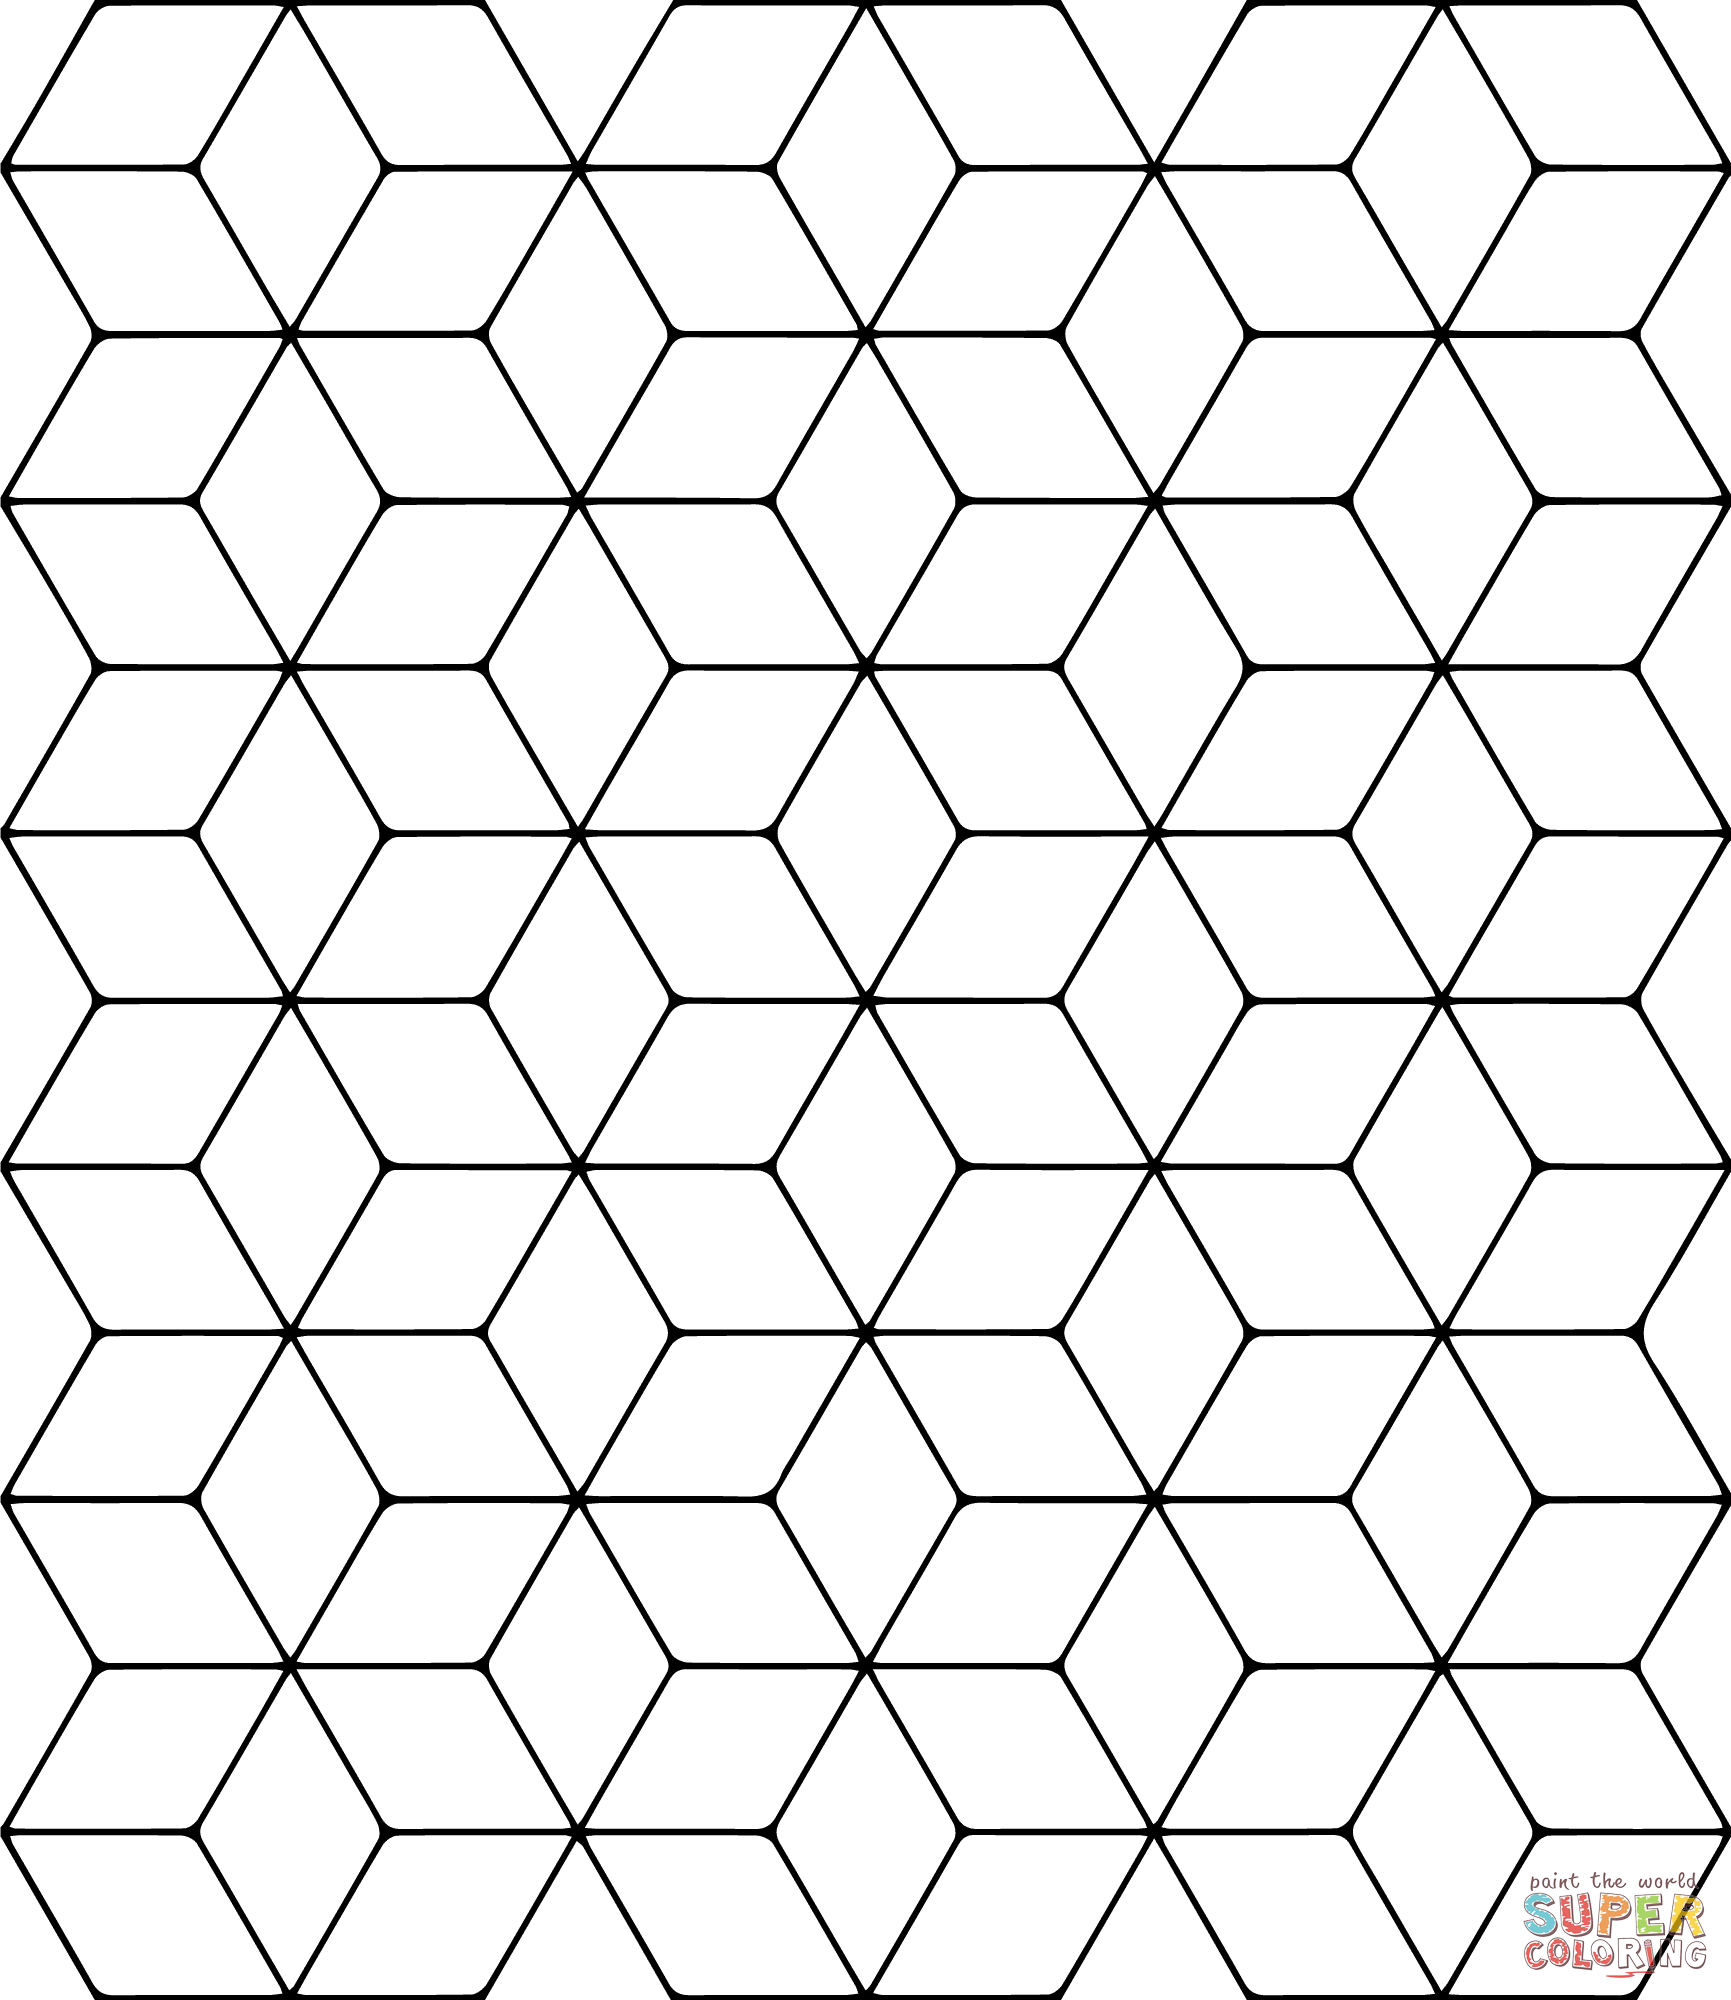 Tessellation Octogon Google Search Tessellation Patterns Tessellation Art Coloring Pages